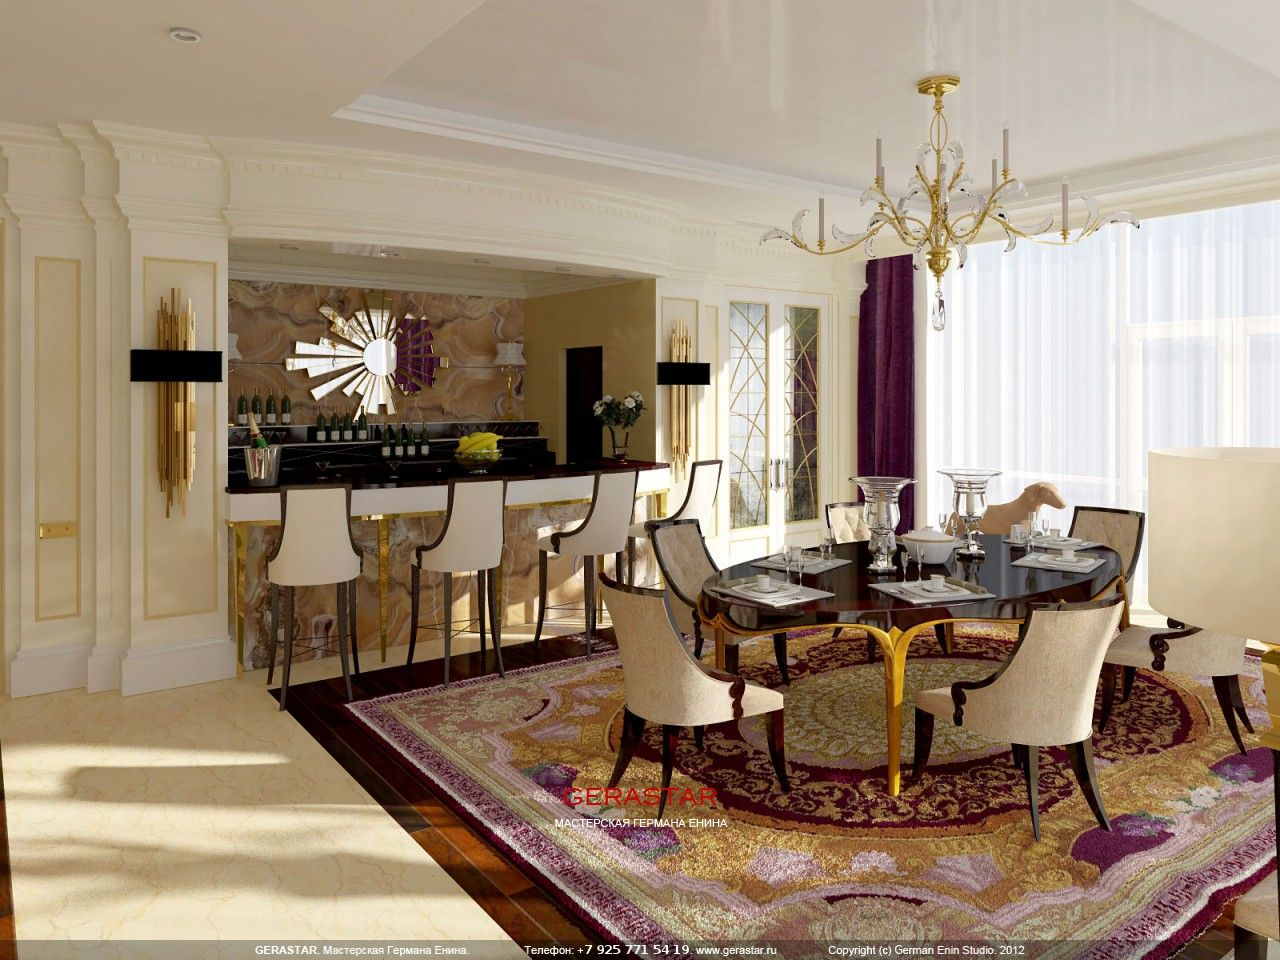 Apartment Designed By Enin German With Christopher Guy Furniture